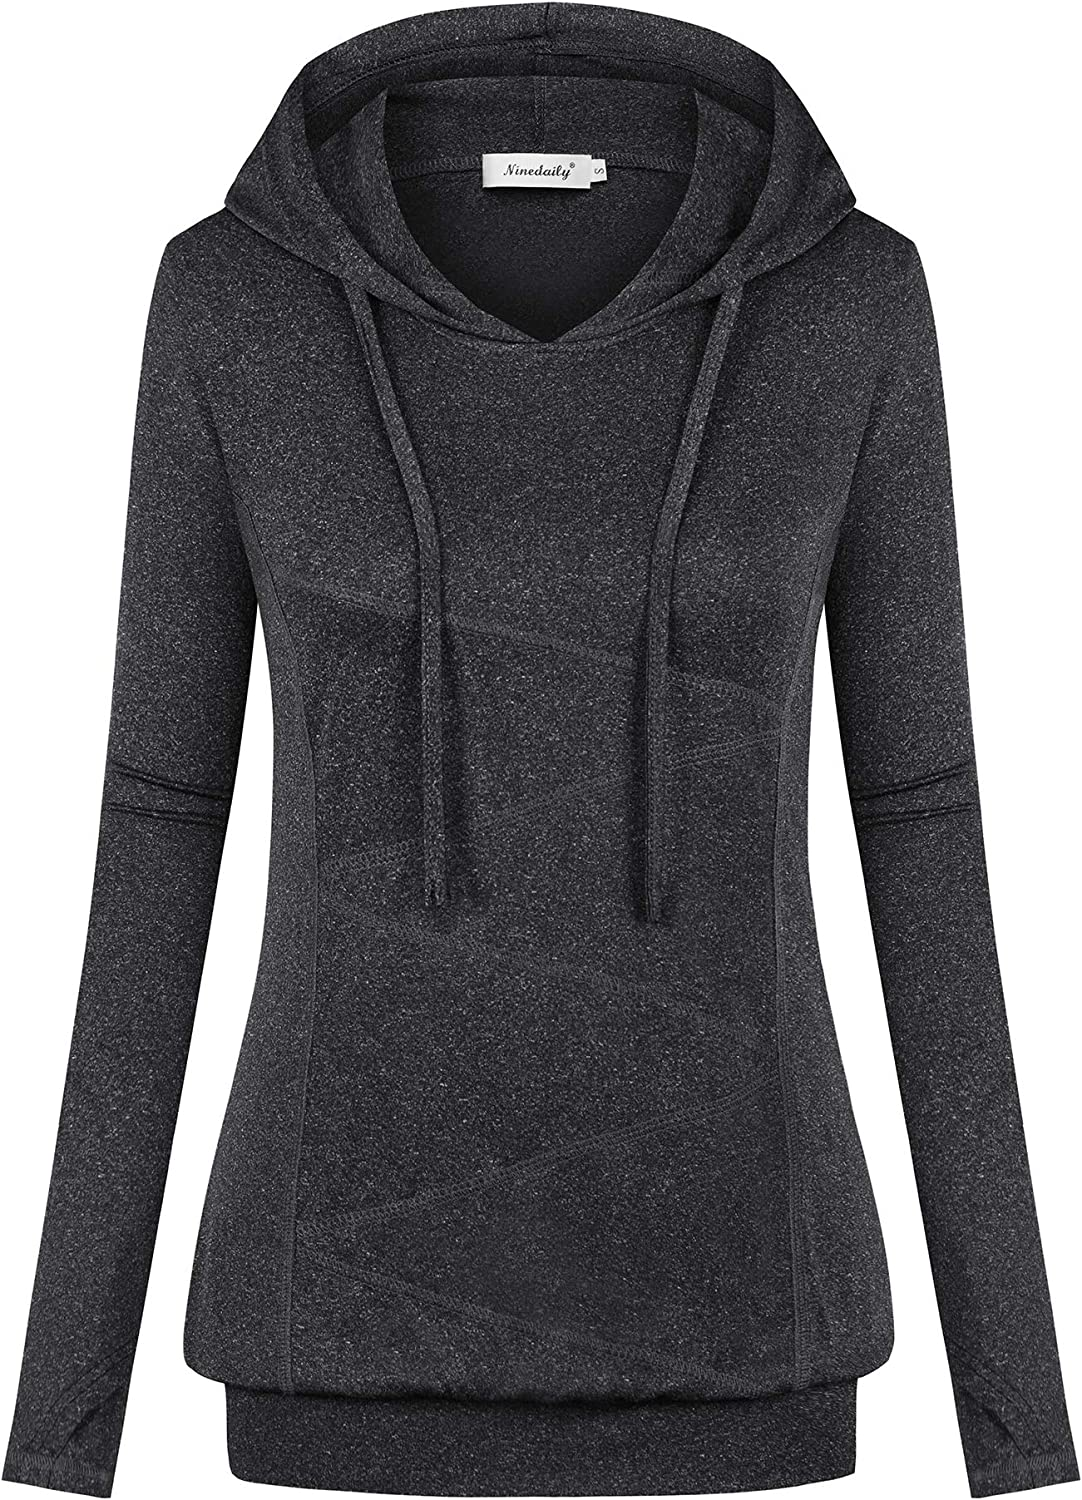 Ninedaily Women's Long Sleeve Hoodies Winter Workout Fitness Tops Exercise Shirt